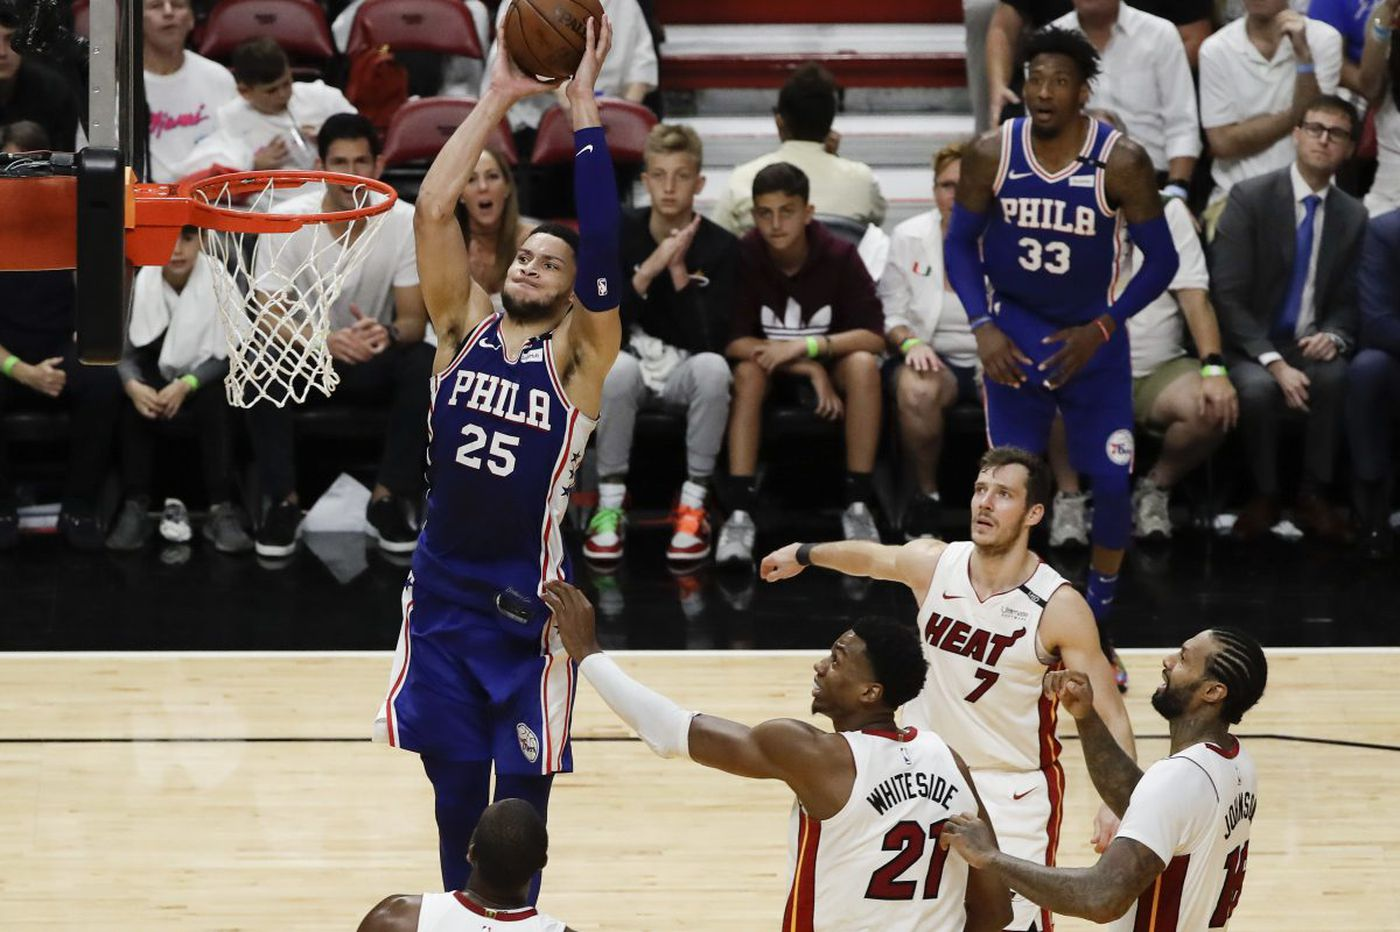 Sixers beat Heat in Game 4 behind Ben Simmons triple-double, Joel Embiid's rim protection